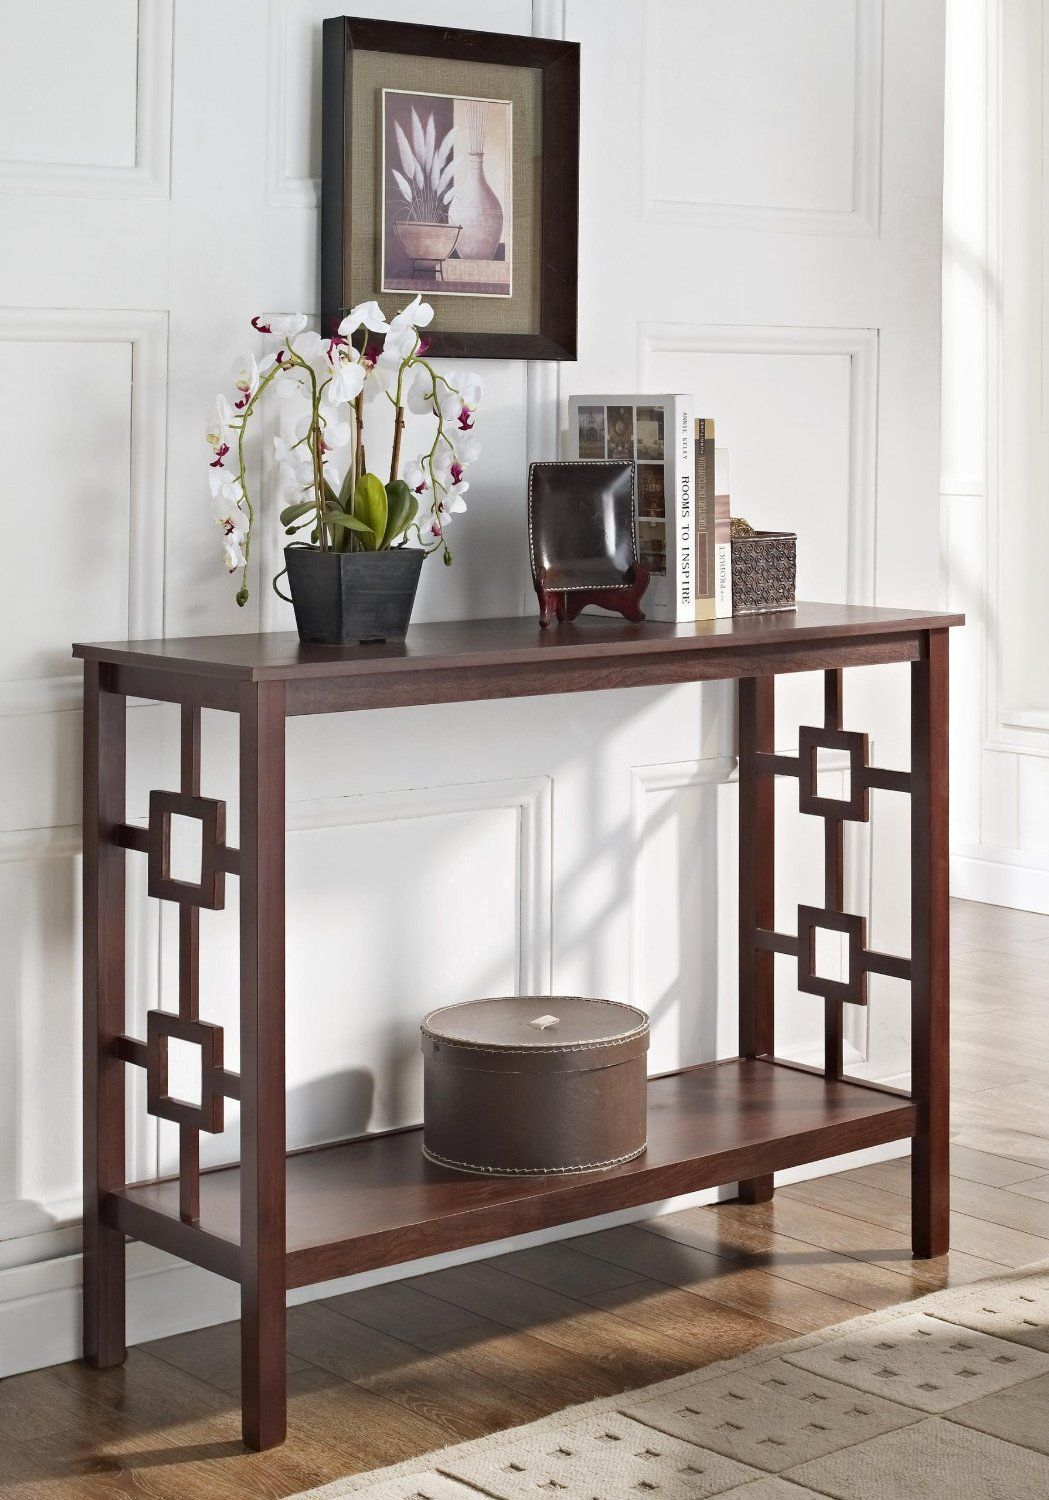 Amazon espresso square design occasional console sofa table espresso square design console sofa table overstock shopping great deals on coffee sofa end tables geotapseo Choice Image